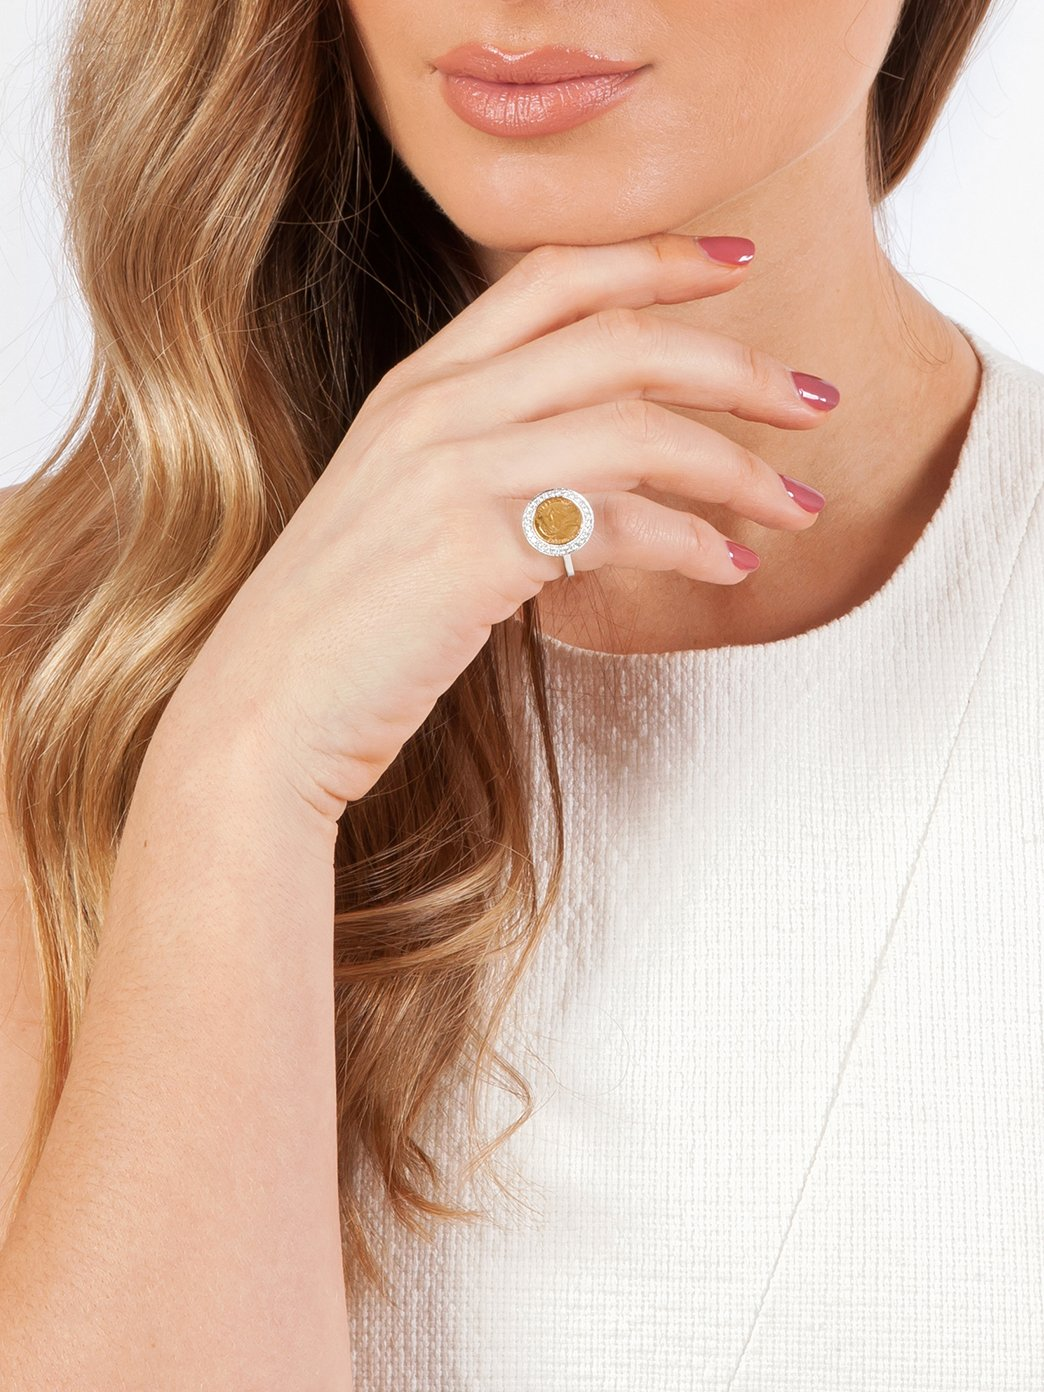 Fiorina Jewellery Luxe Set Gold Button Ring